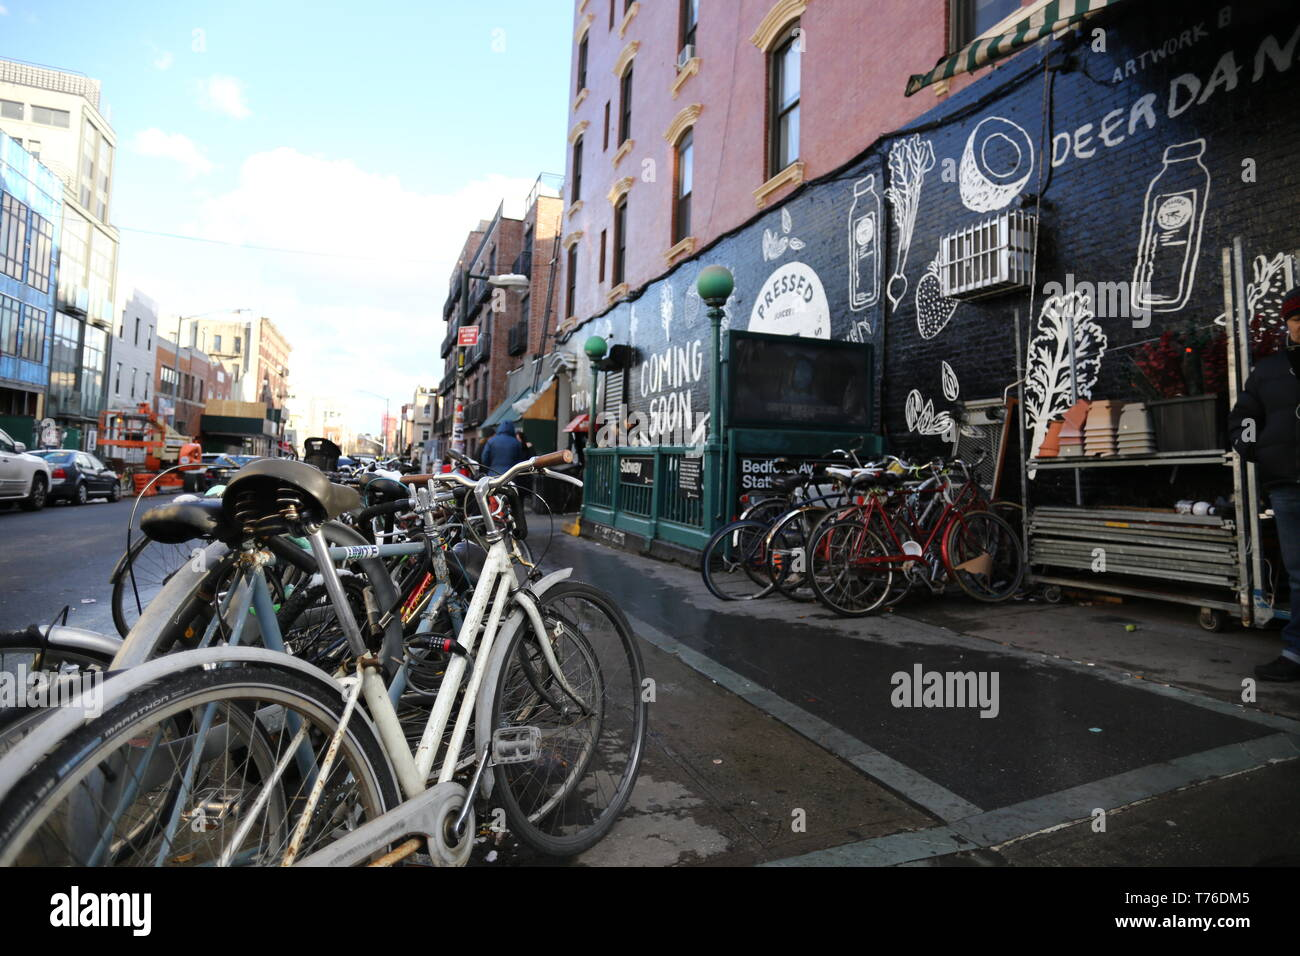 Bikes parked on the streets of Williamsburg in Brooklyn, NY - Stock Image